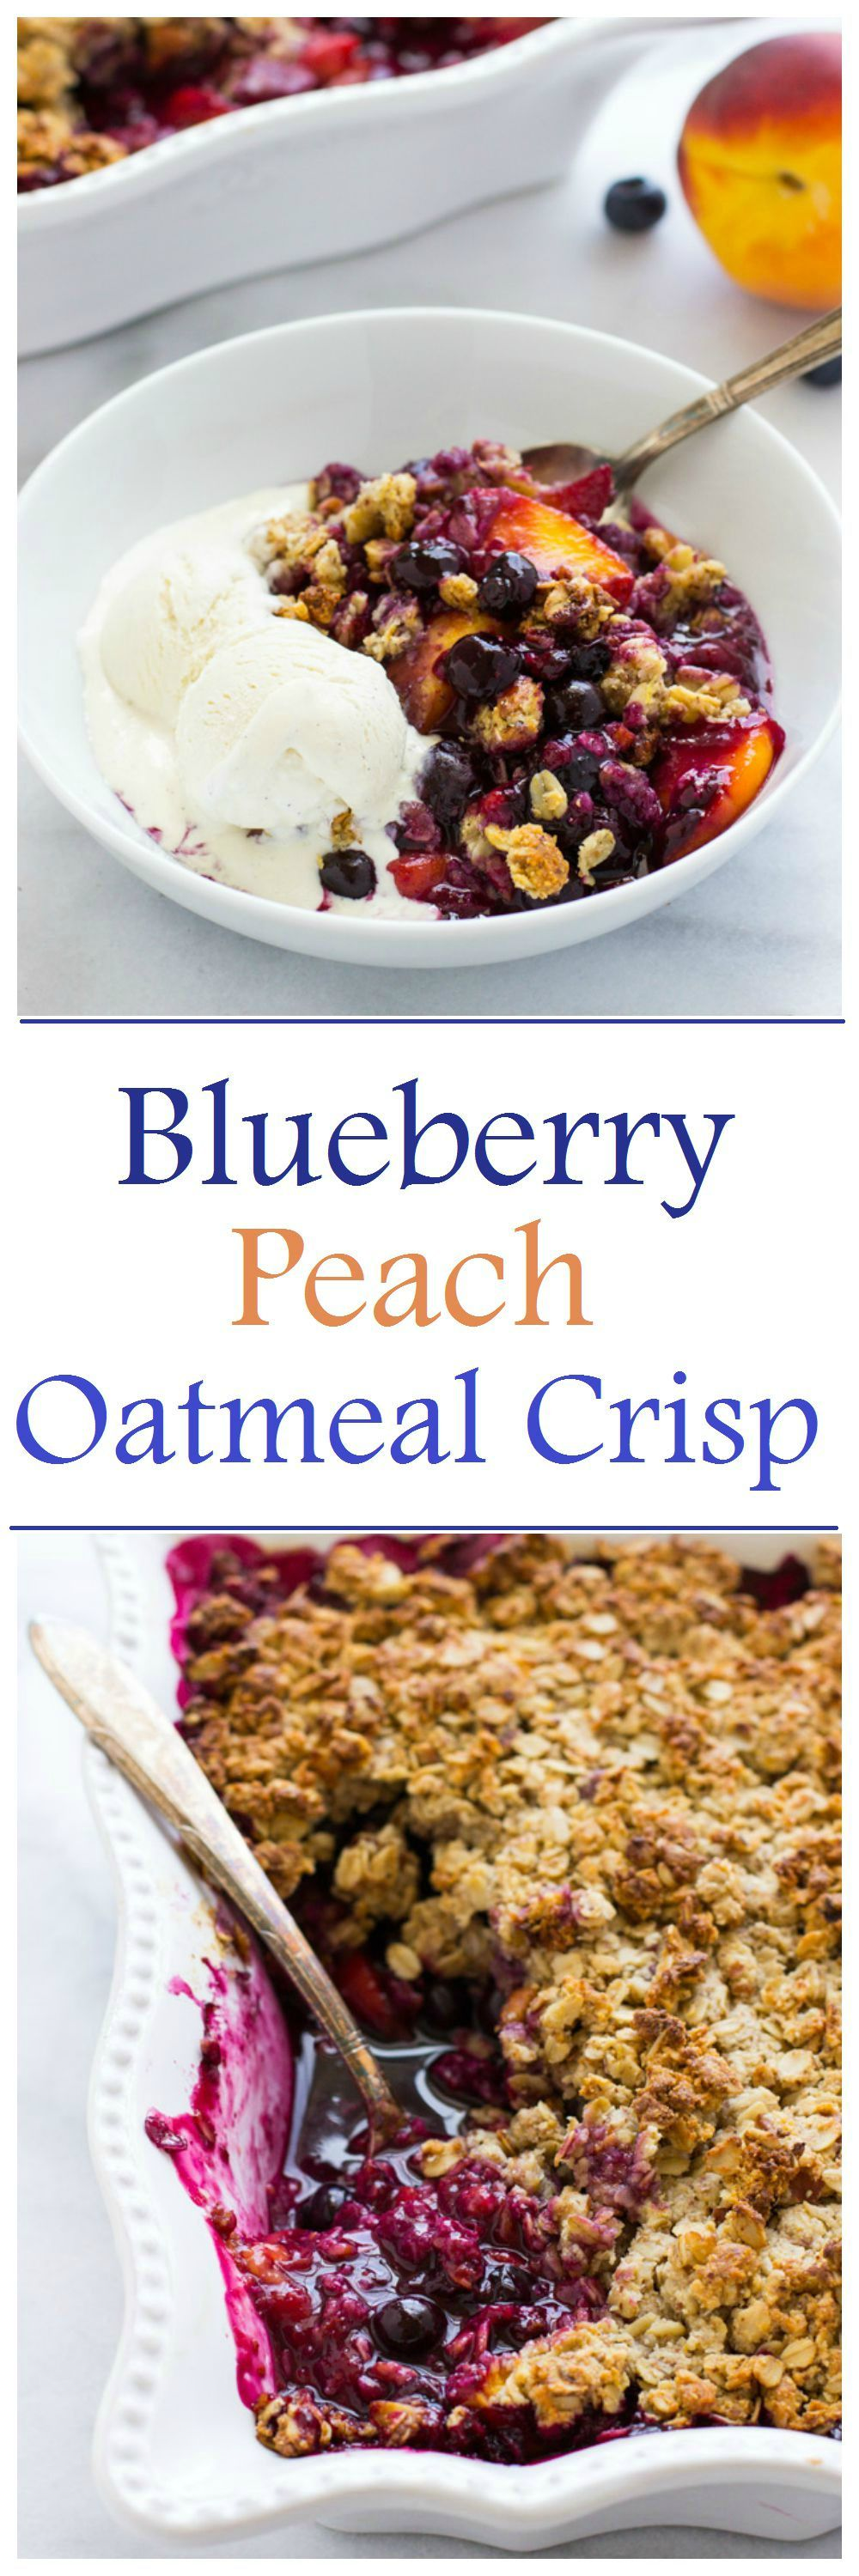 Blueberry Peach Oatmeal Crisp- the ultimate summer dessert! Made with healthy ingredients. #cleaneating #summer #glutenfree